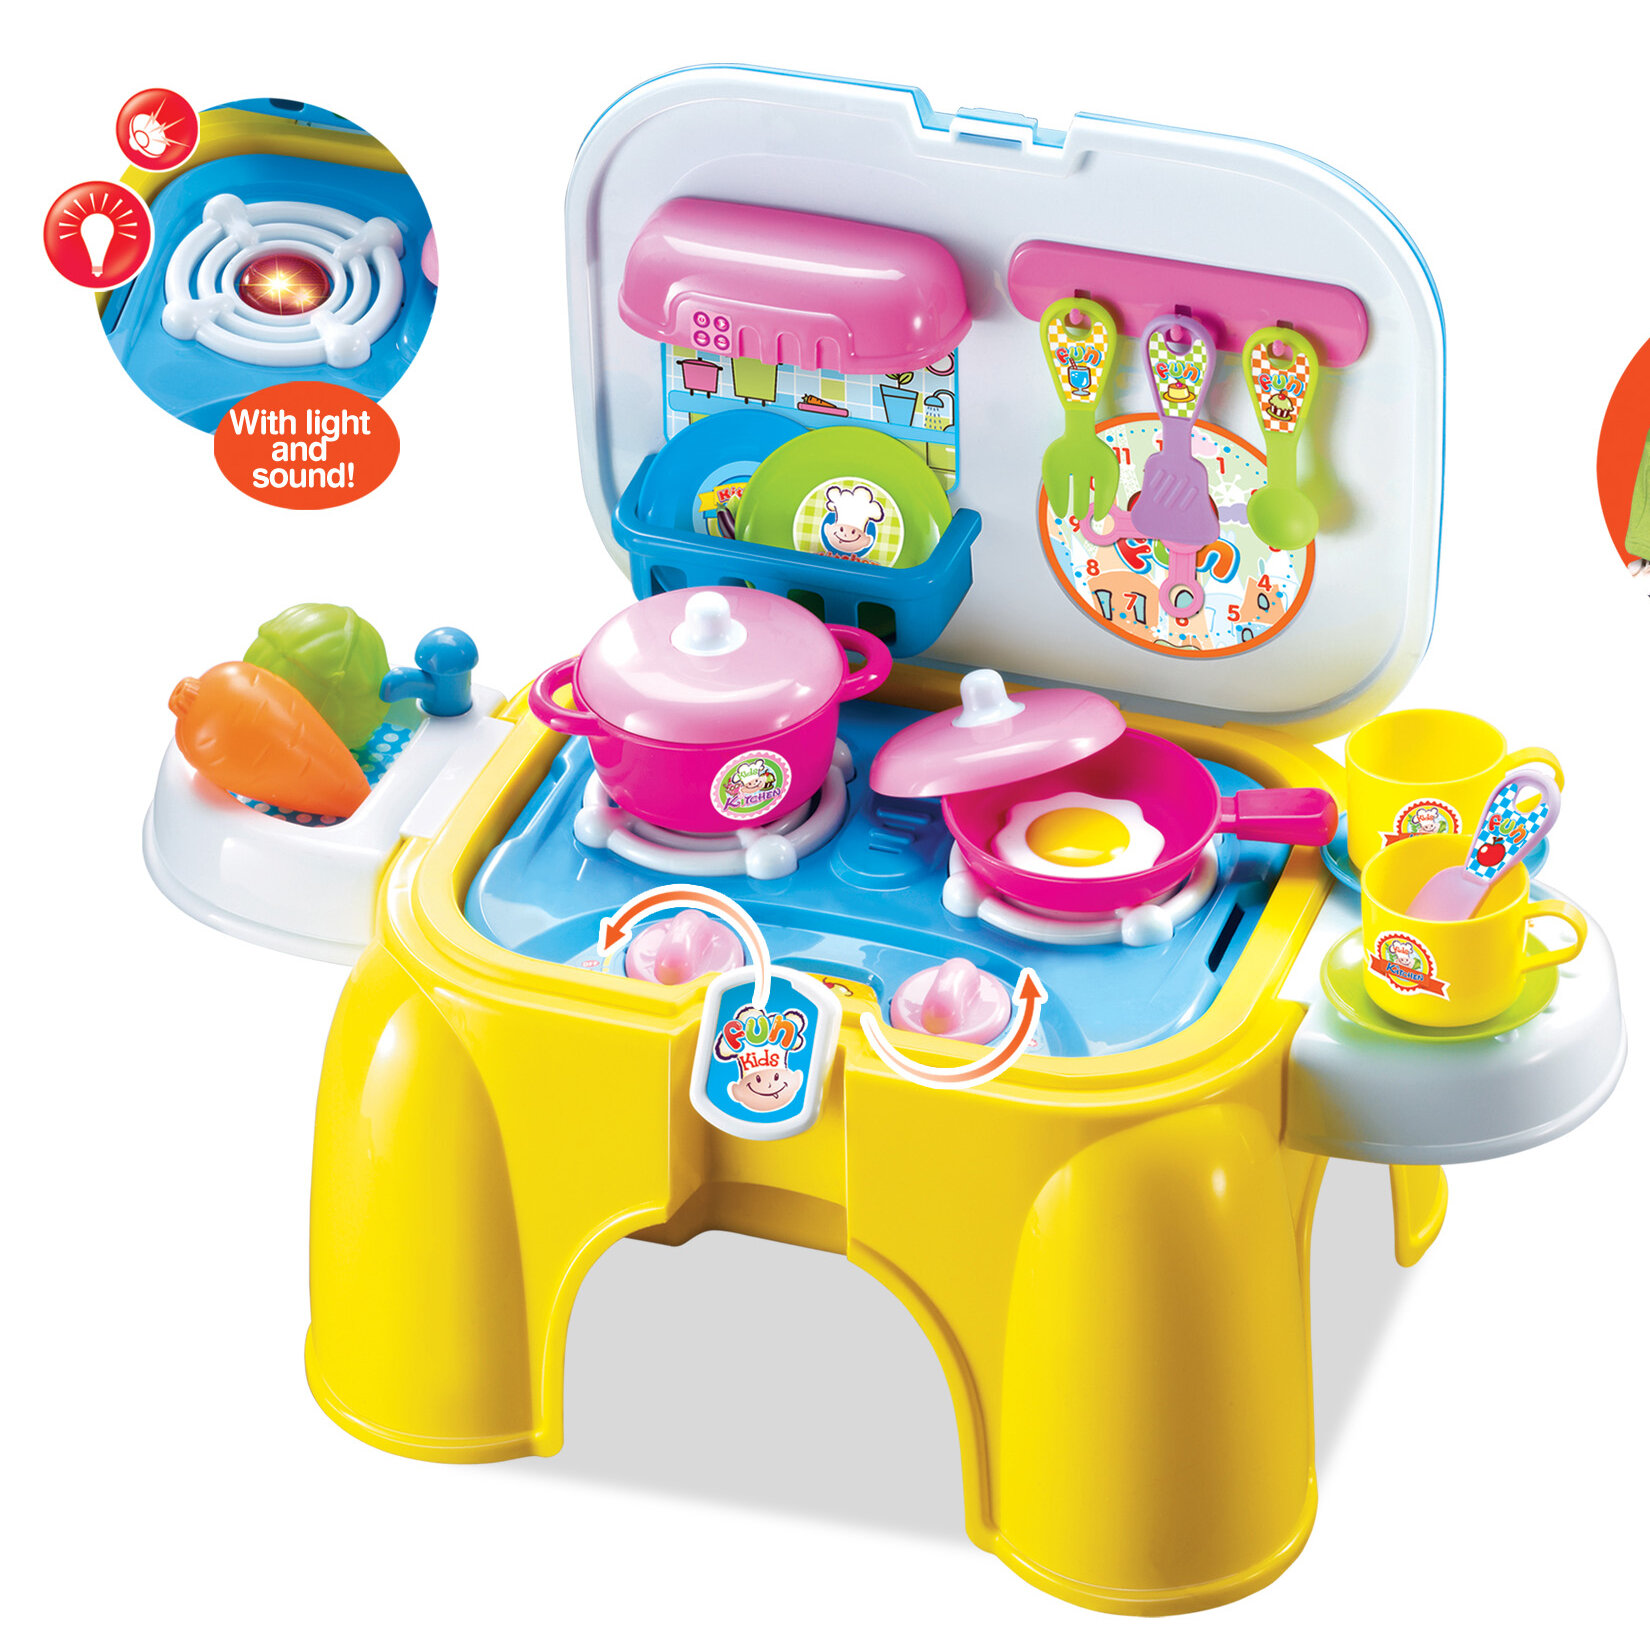 Berry Toys My First Portable and Carry Kitchen Play Set & Reviews